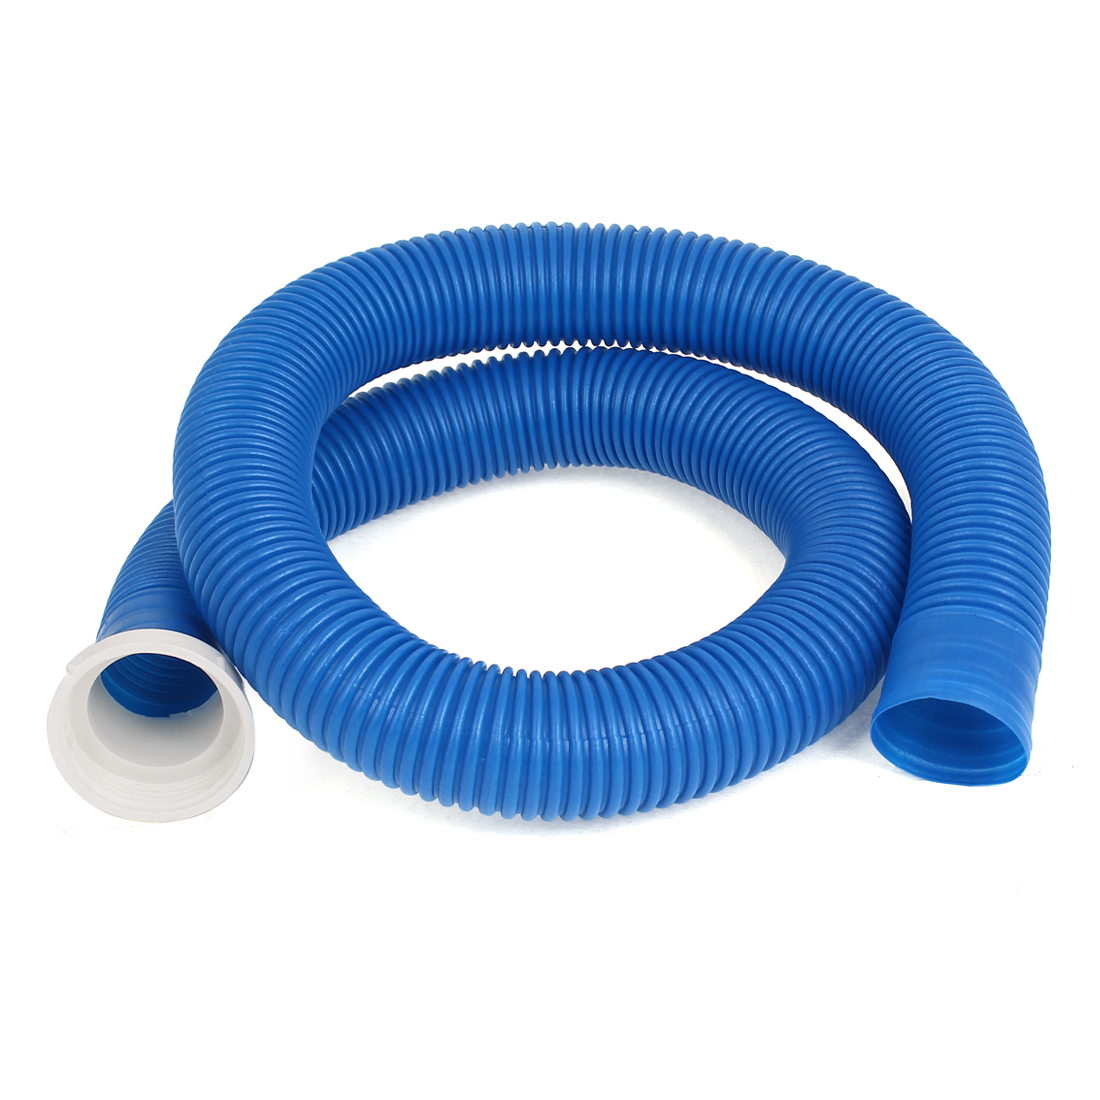 Washing Machine Dishwasher 3.3ft Long Drain Hose Extension Blue